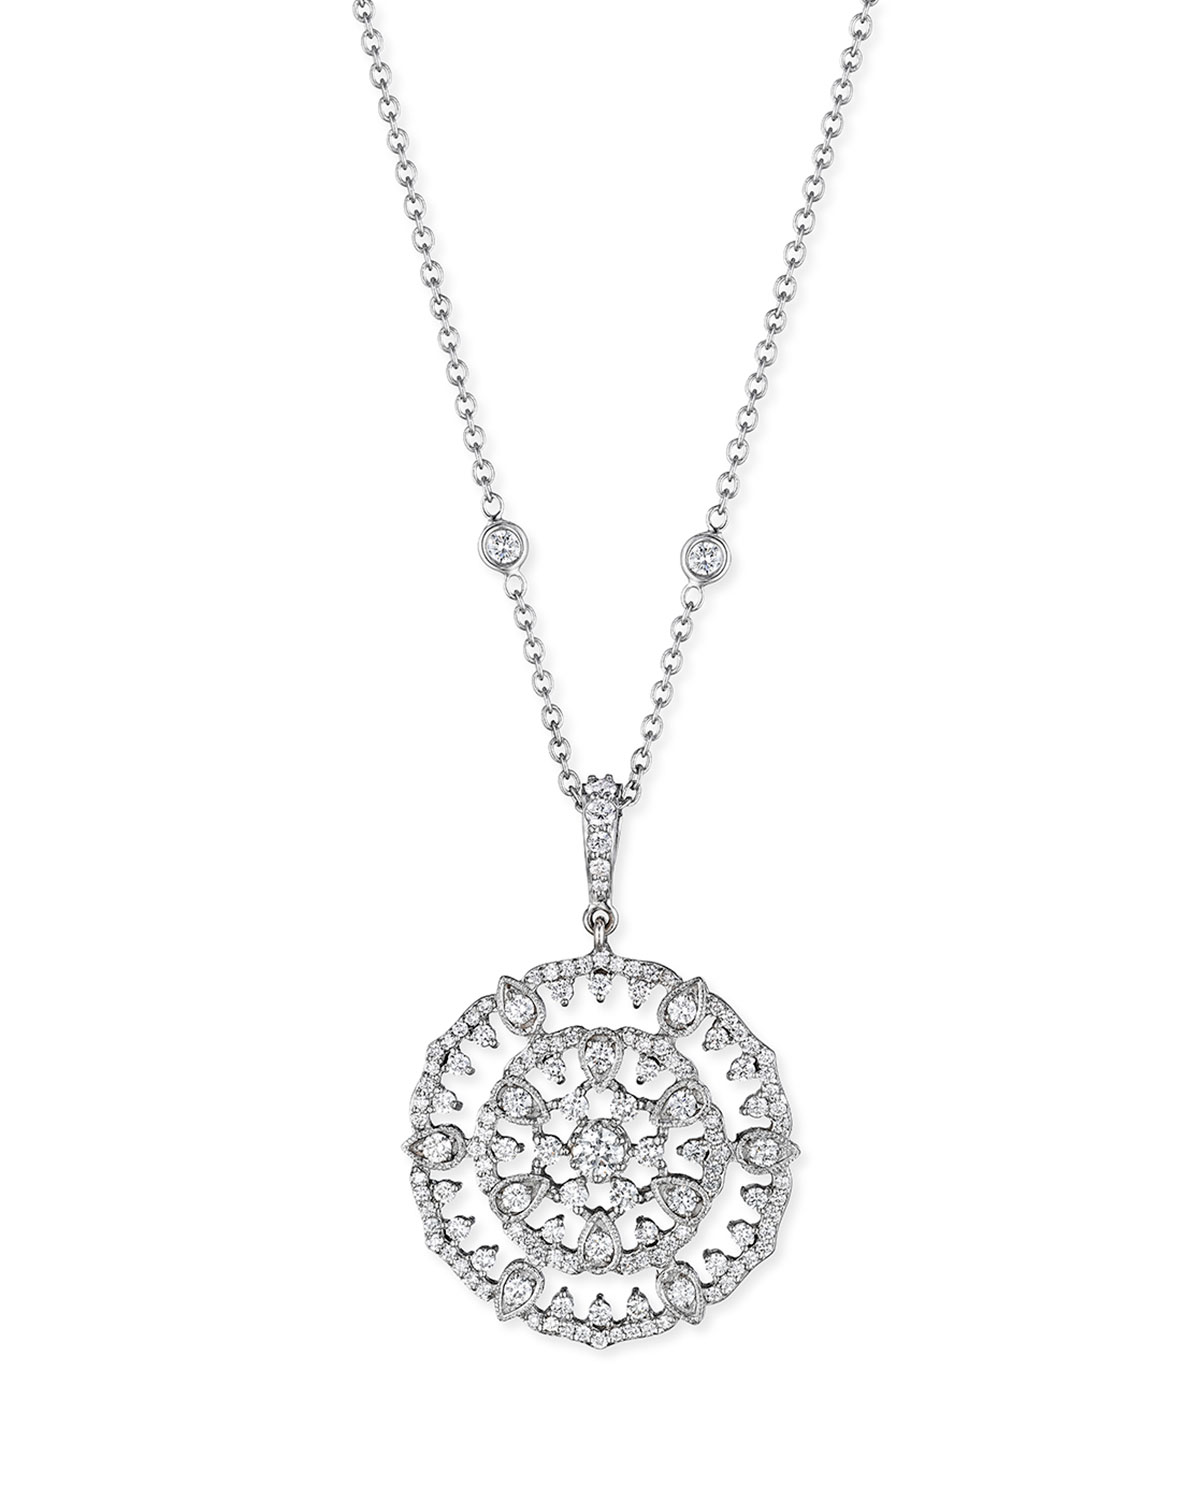 PENNY PREVILLE 18K White Gold Round Diamond Garland Pendant Necklace